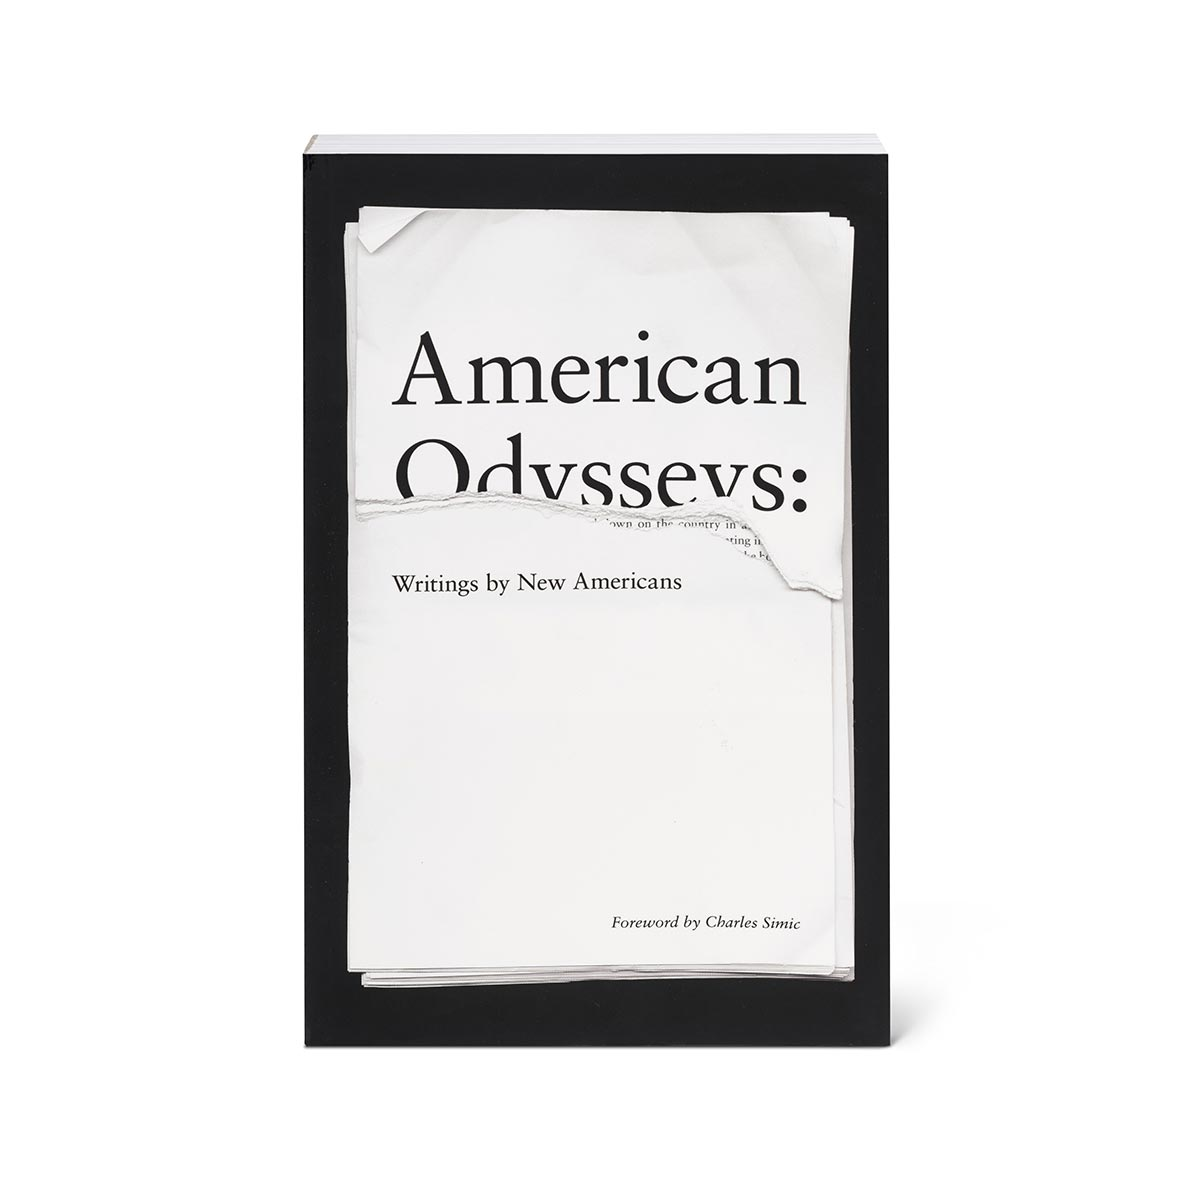 American Odysseys: Writings by New Americans